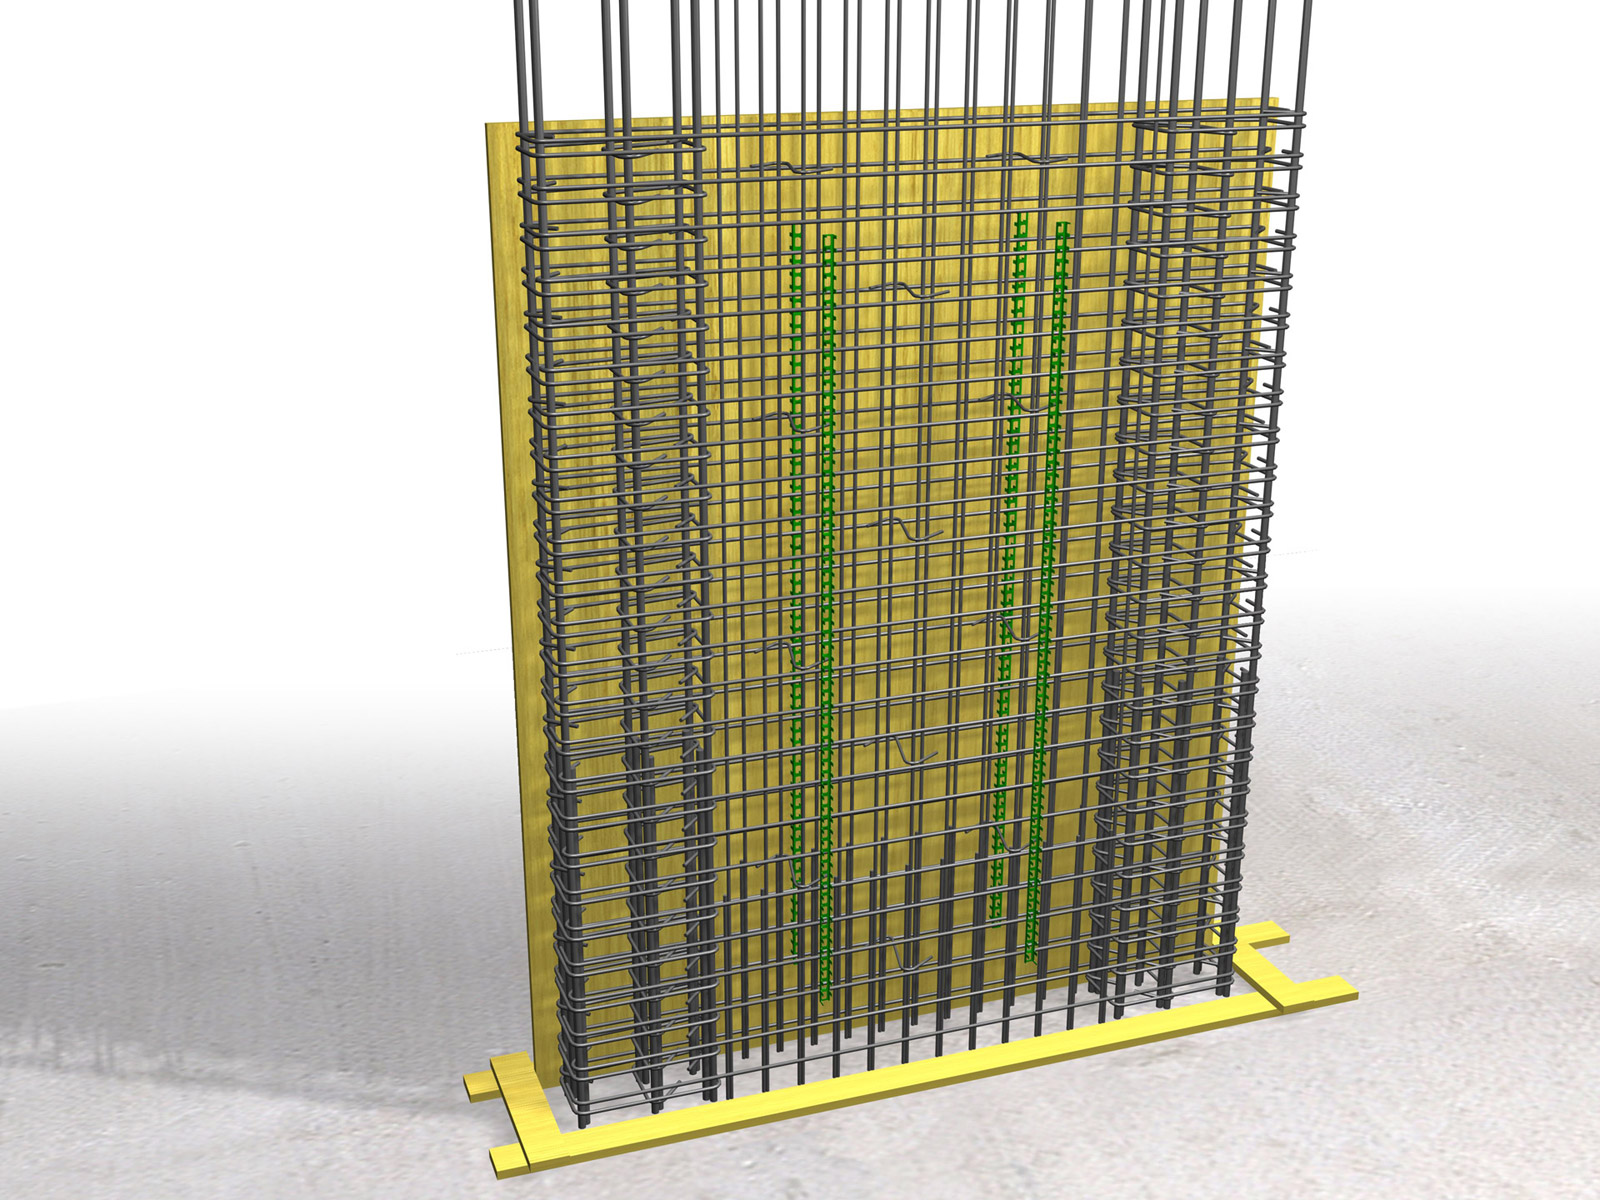 Concrete Rebar Chairs Reinforcement Covering Buildinghow